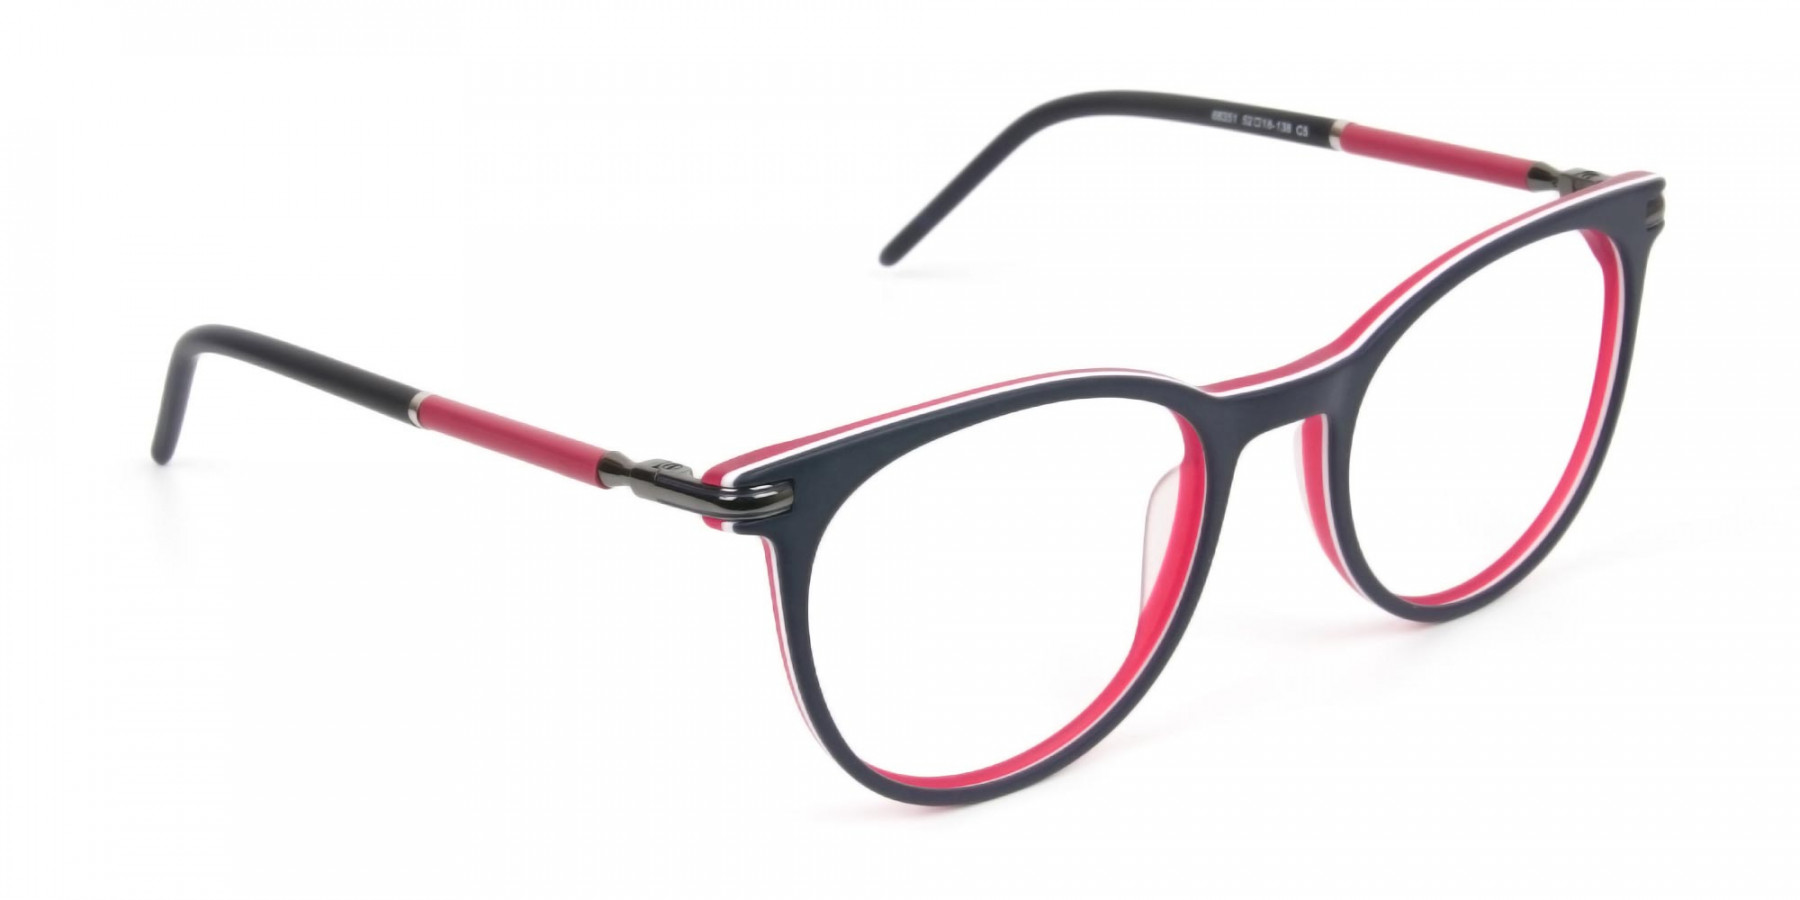 Navy Blue & Red Round Spectacles in Acetate - 1